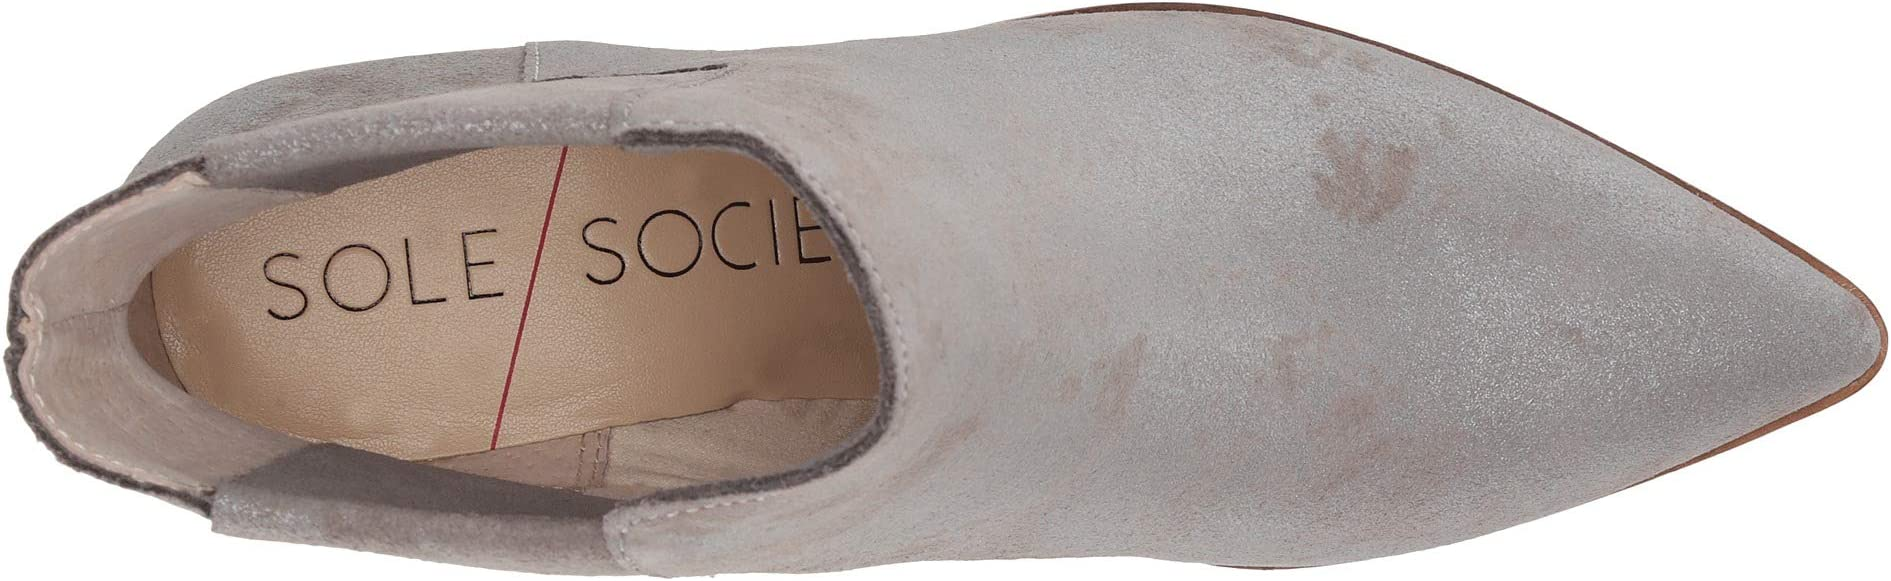 SOLE / SOCIETY Lilianna   Women's shoes   2020 Newest